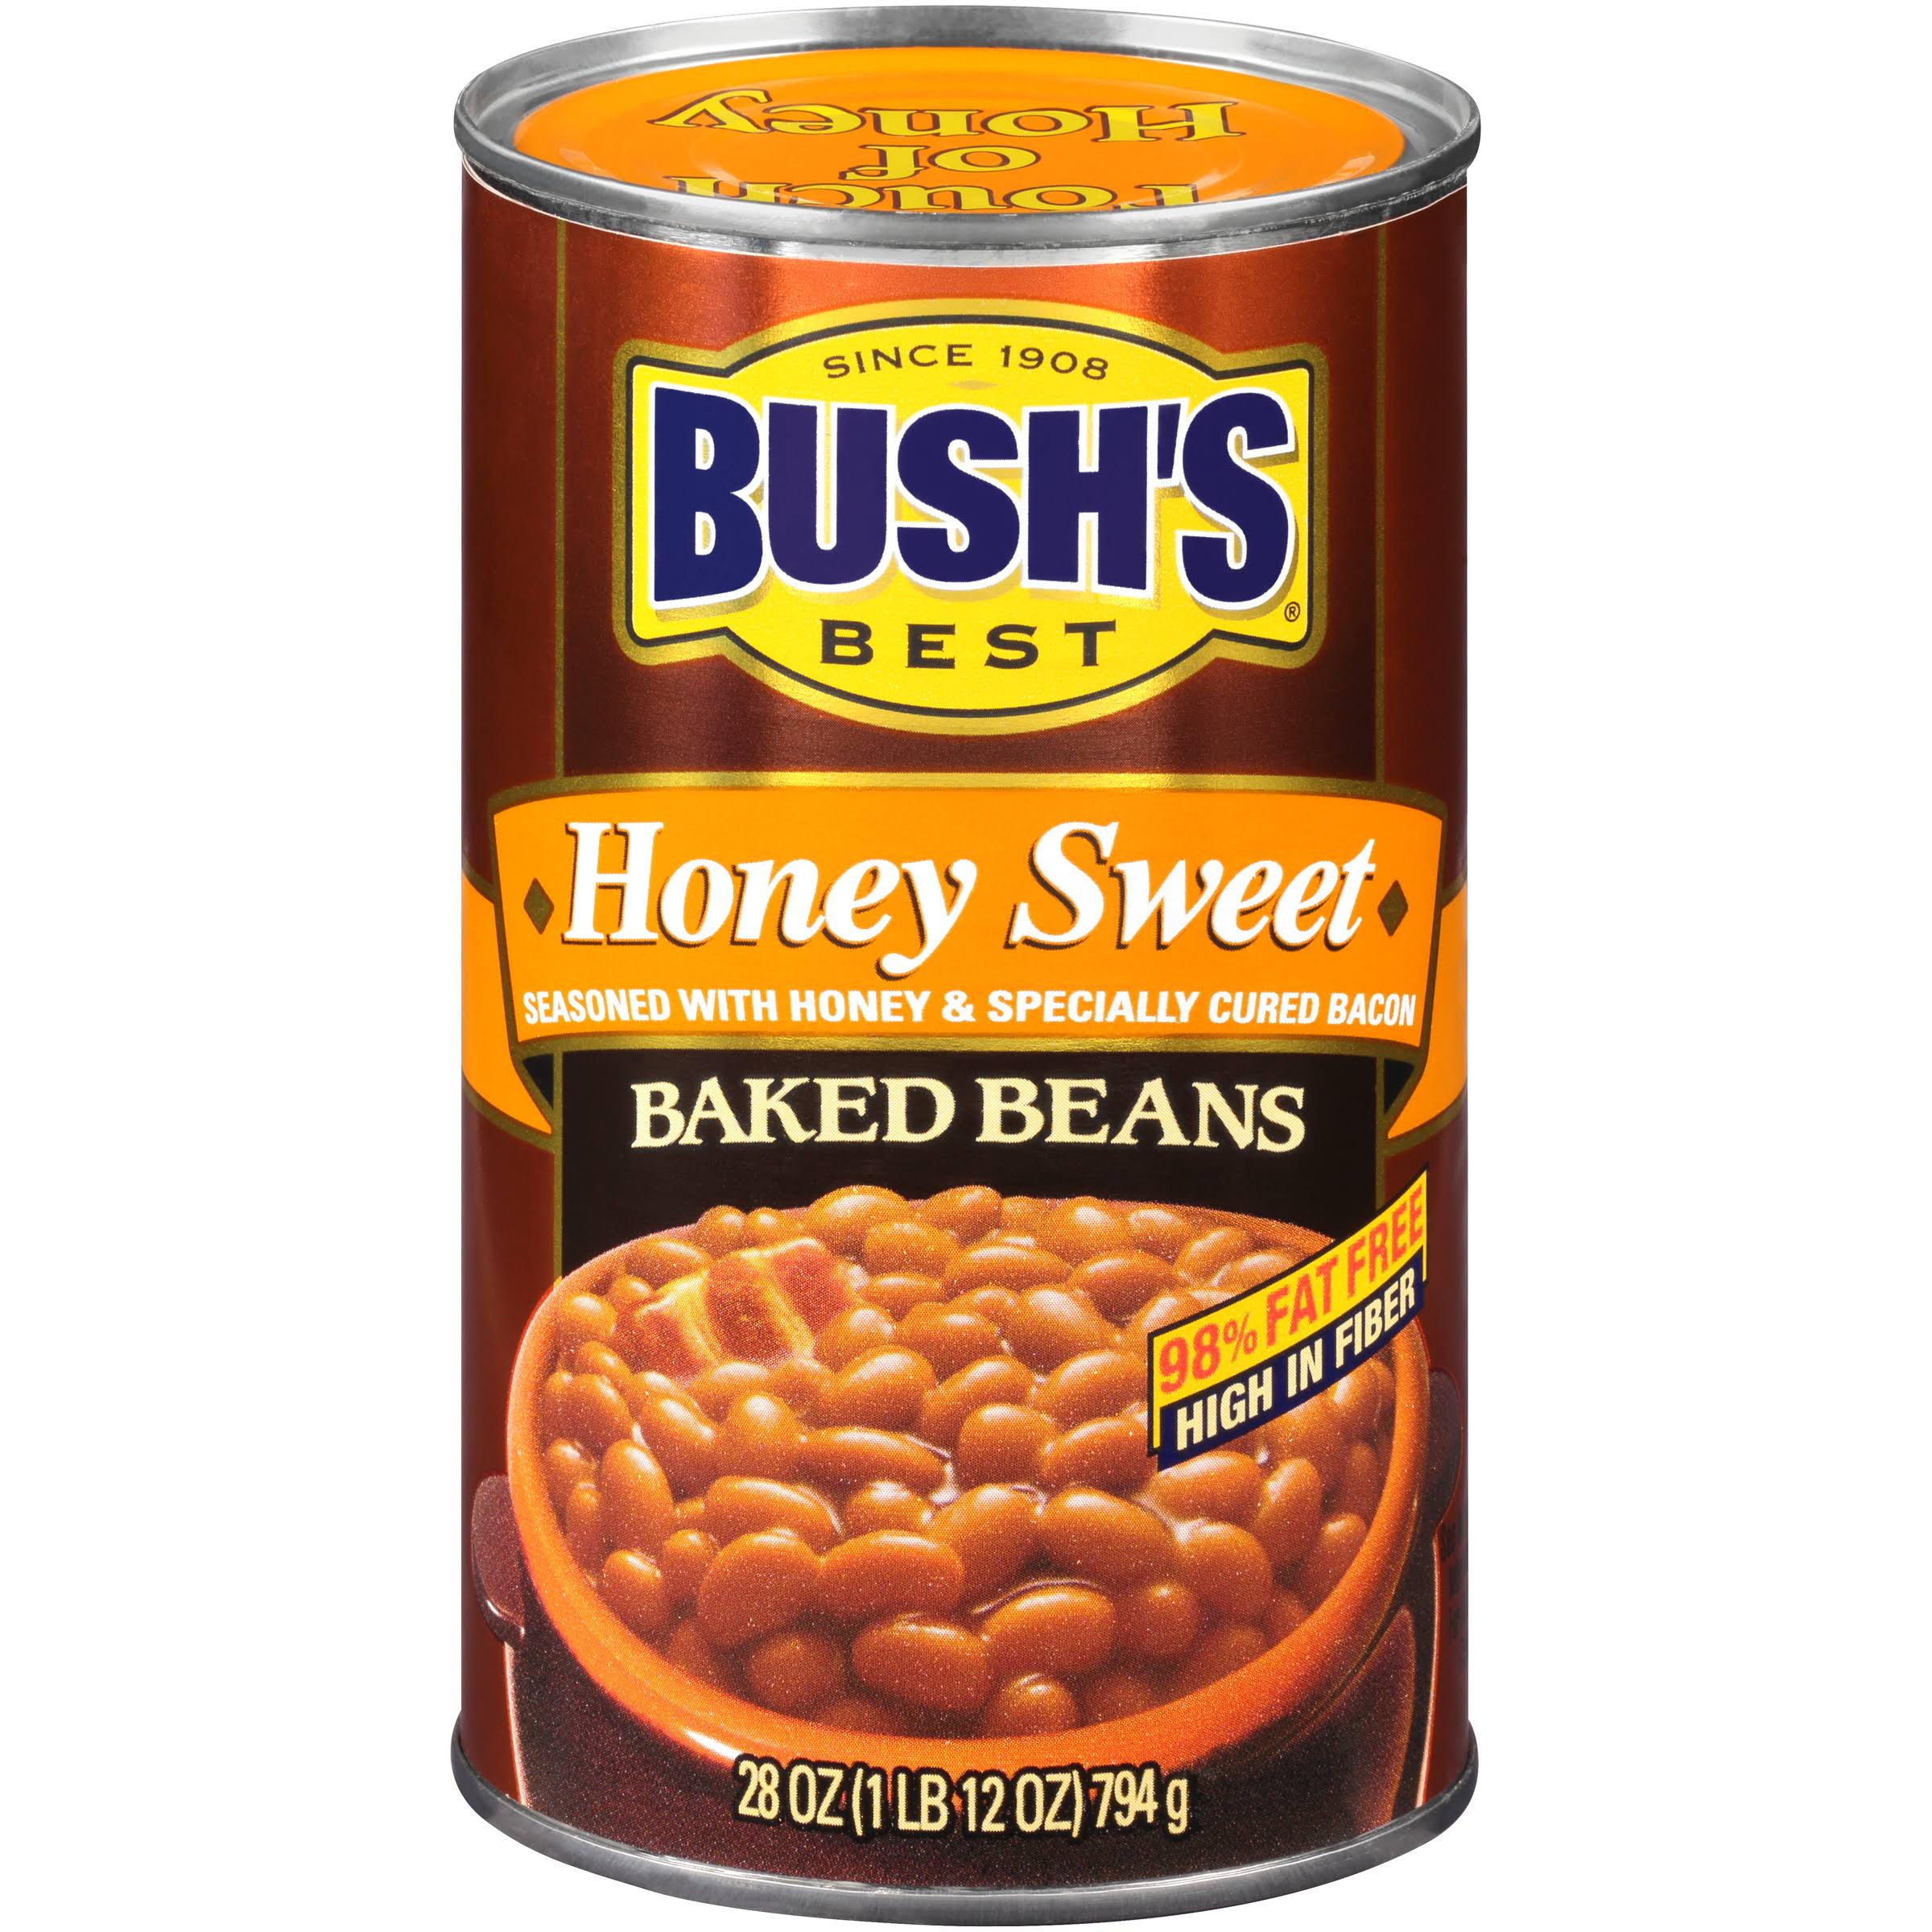 Bush's Best Baked Beans - Honey, 28 oz